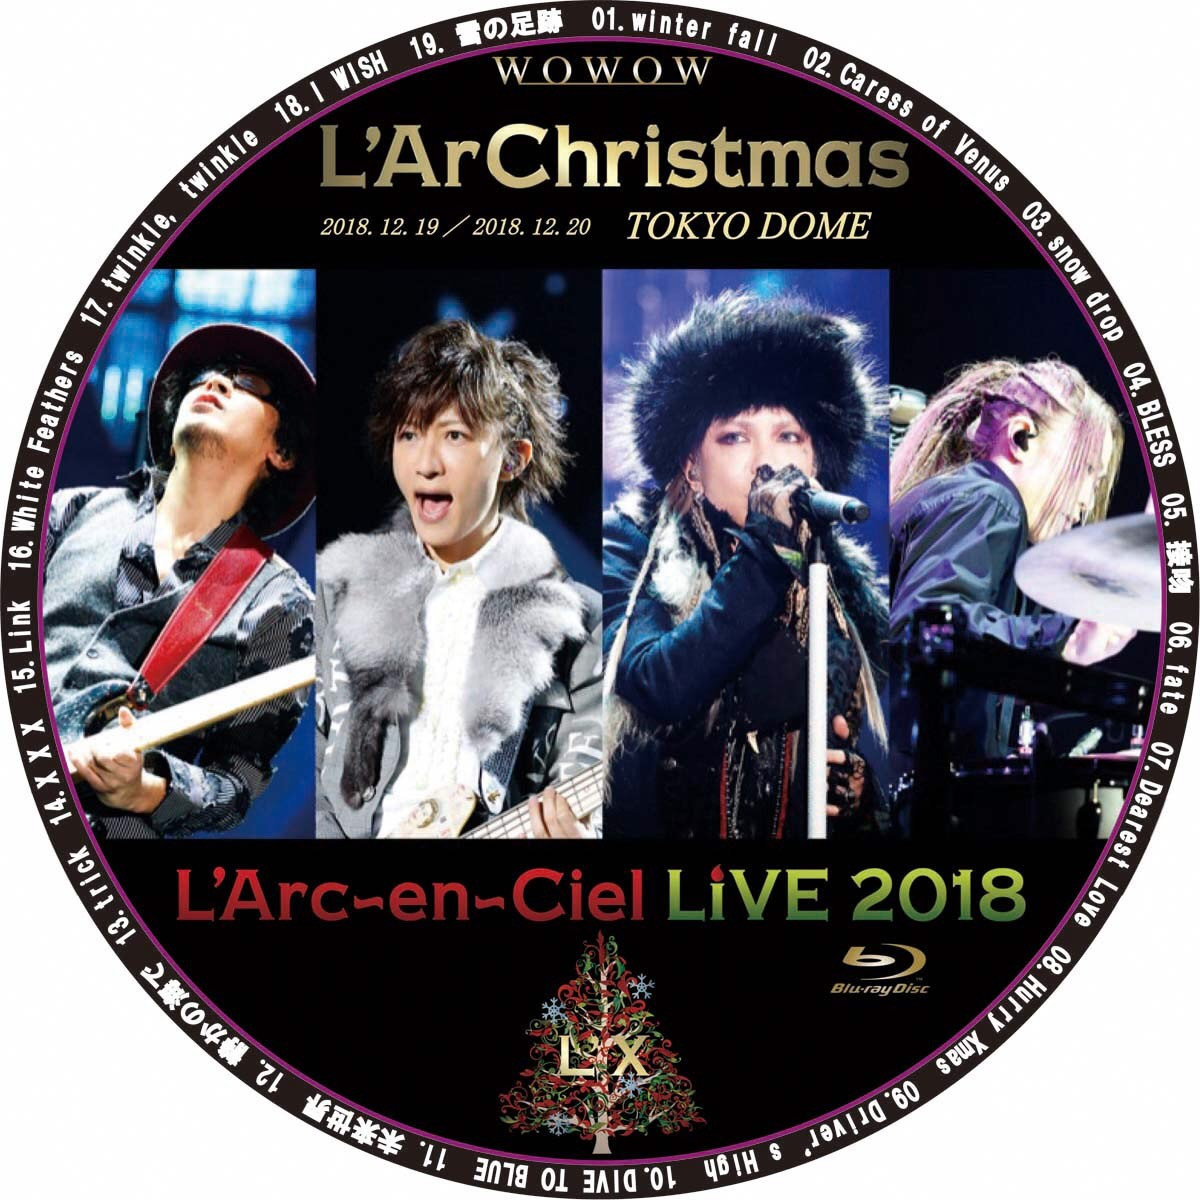 l 39 arc en ciel live 2018 l 39 archristmas wowow. Black Bedroom Furniture Sets. Home Design Ideas